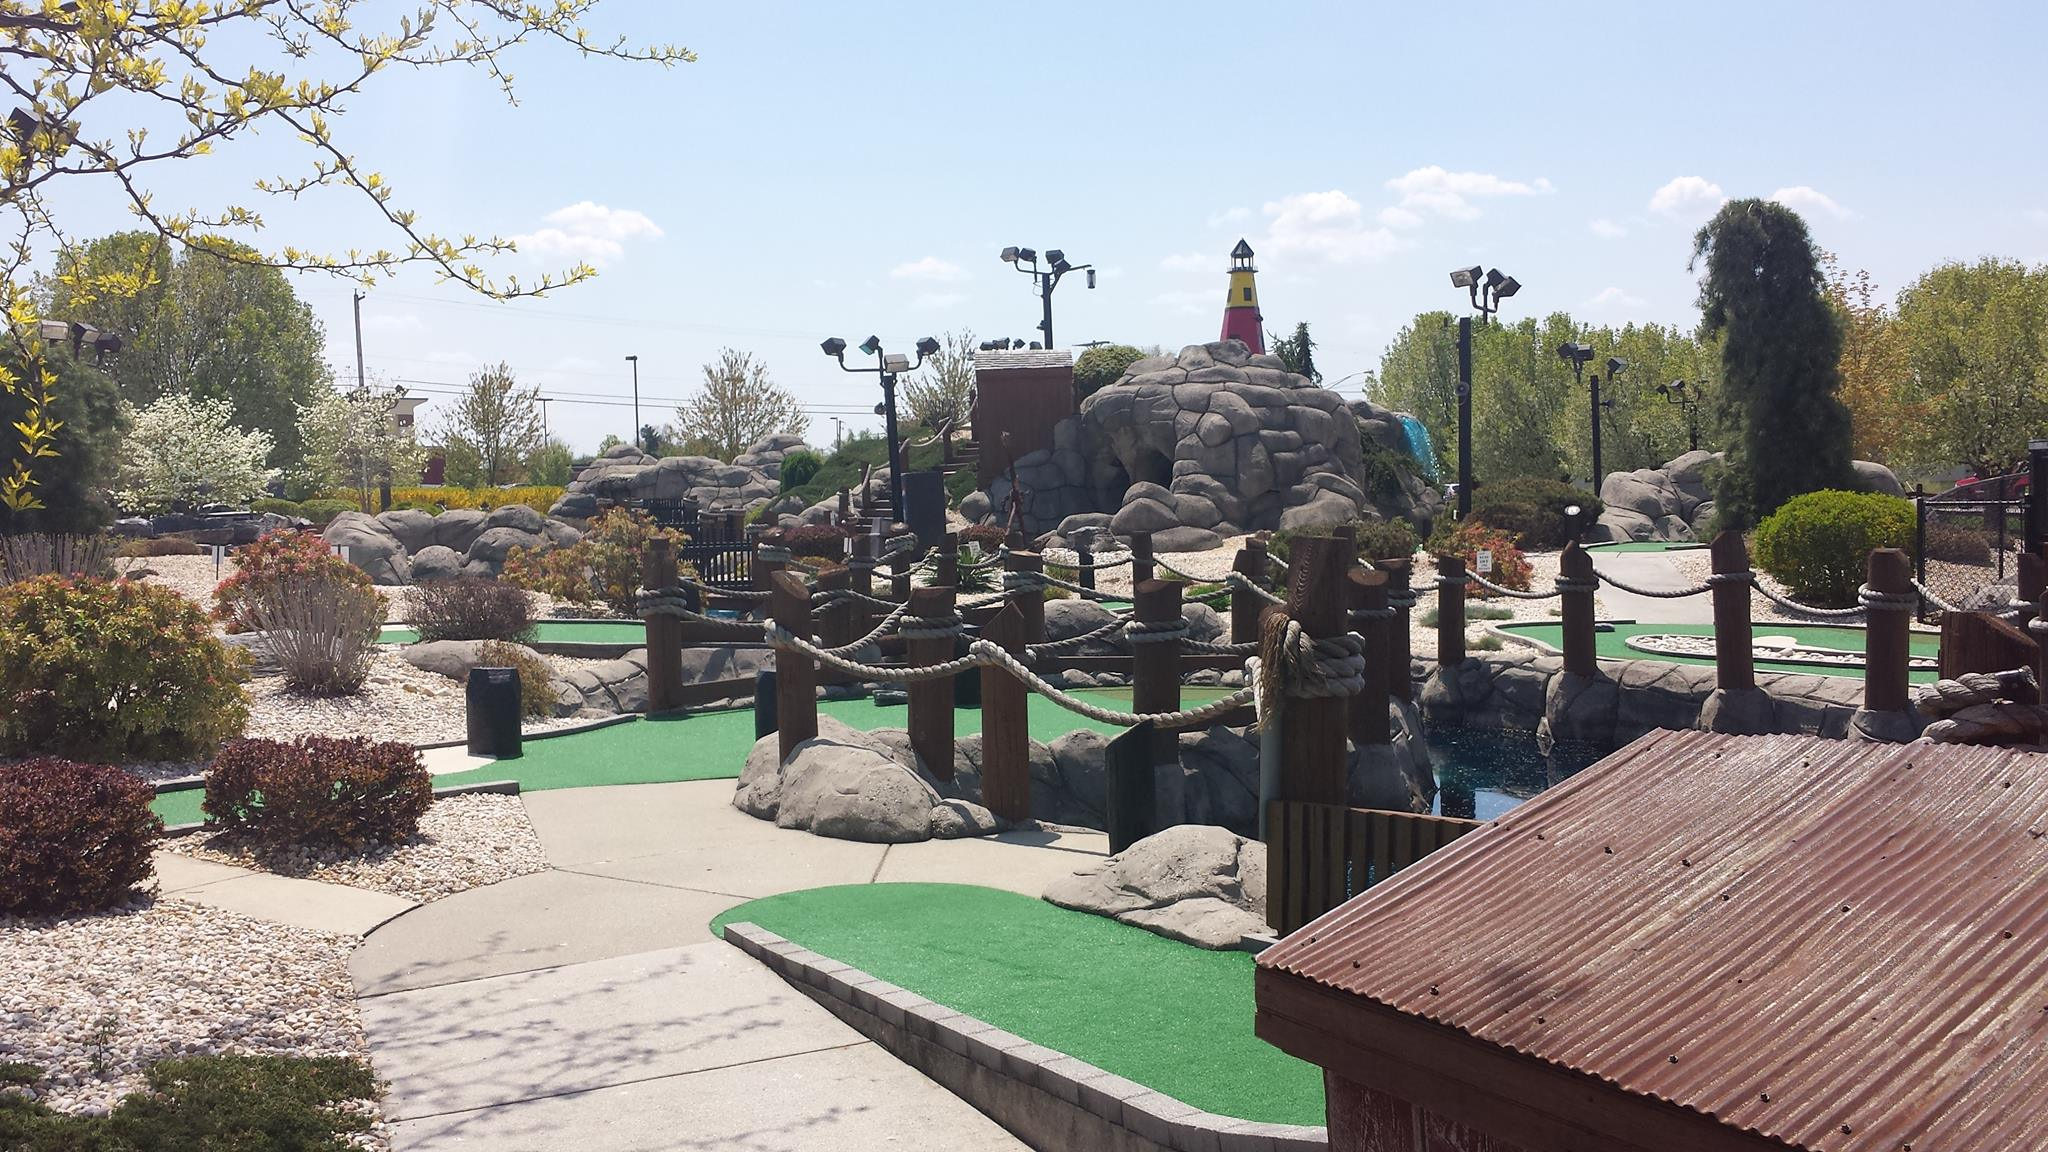 AutoFry in Action: Hickory Falls brings the Family Fun